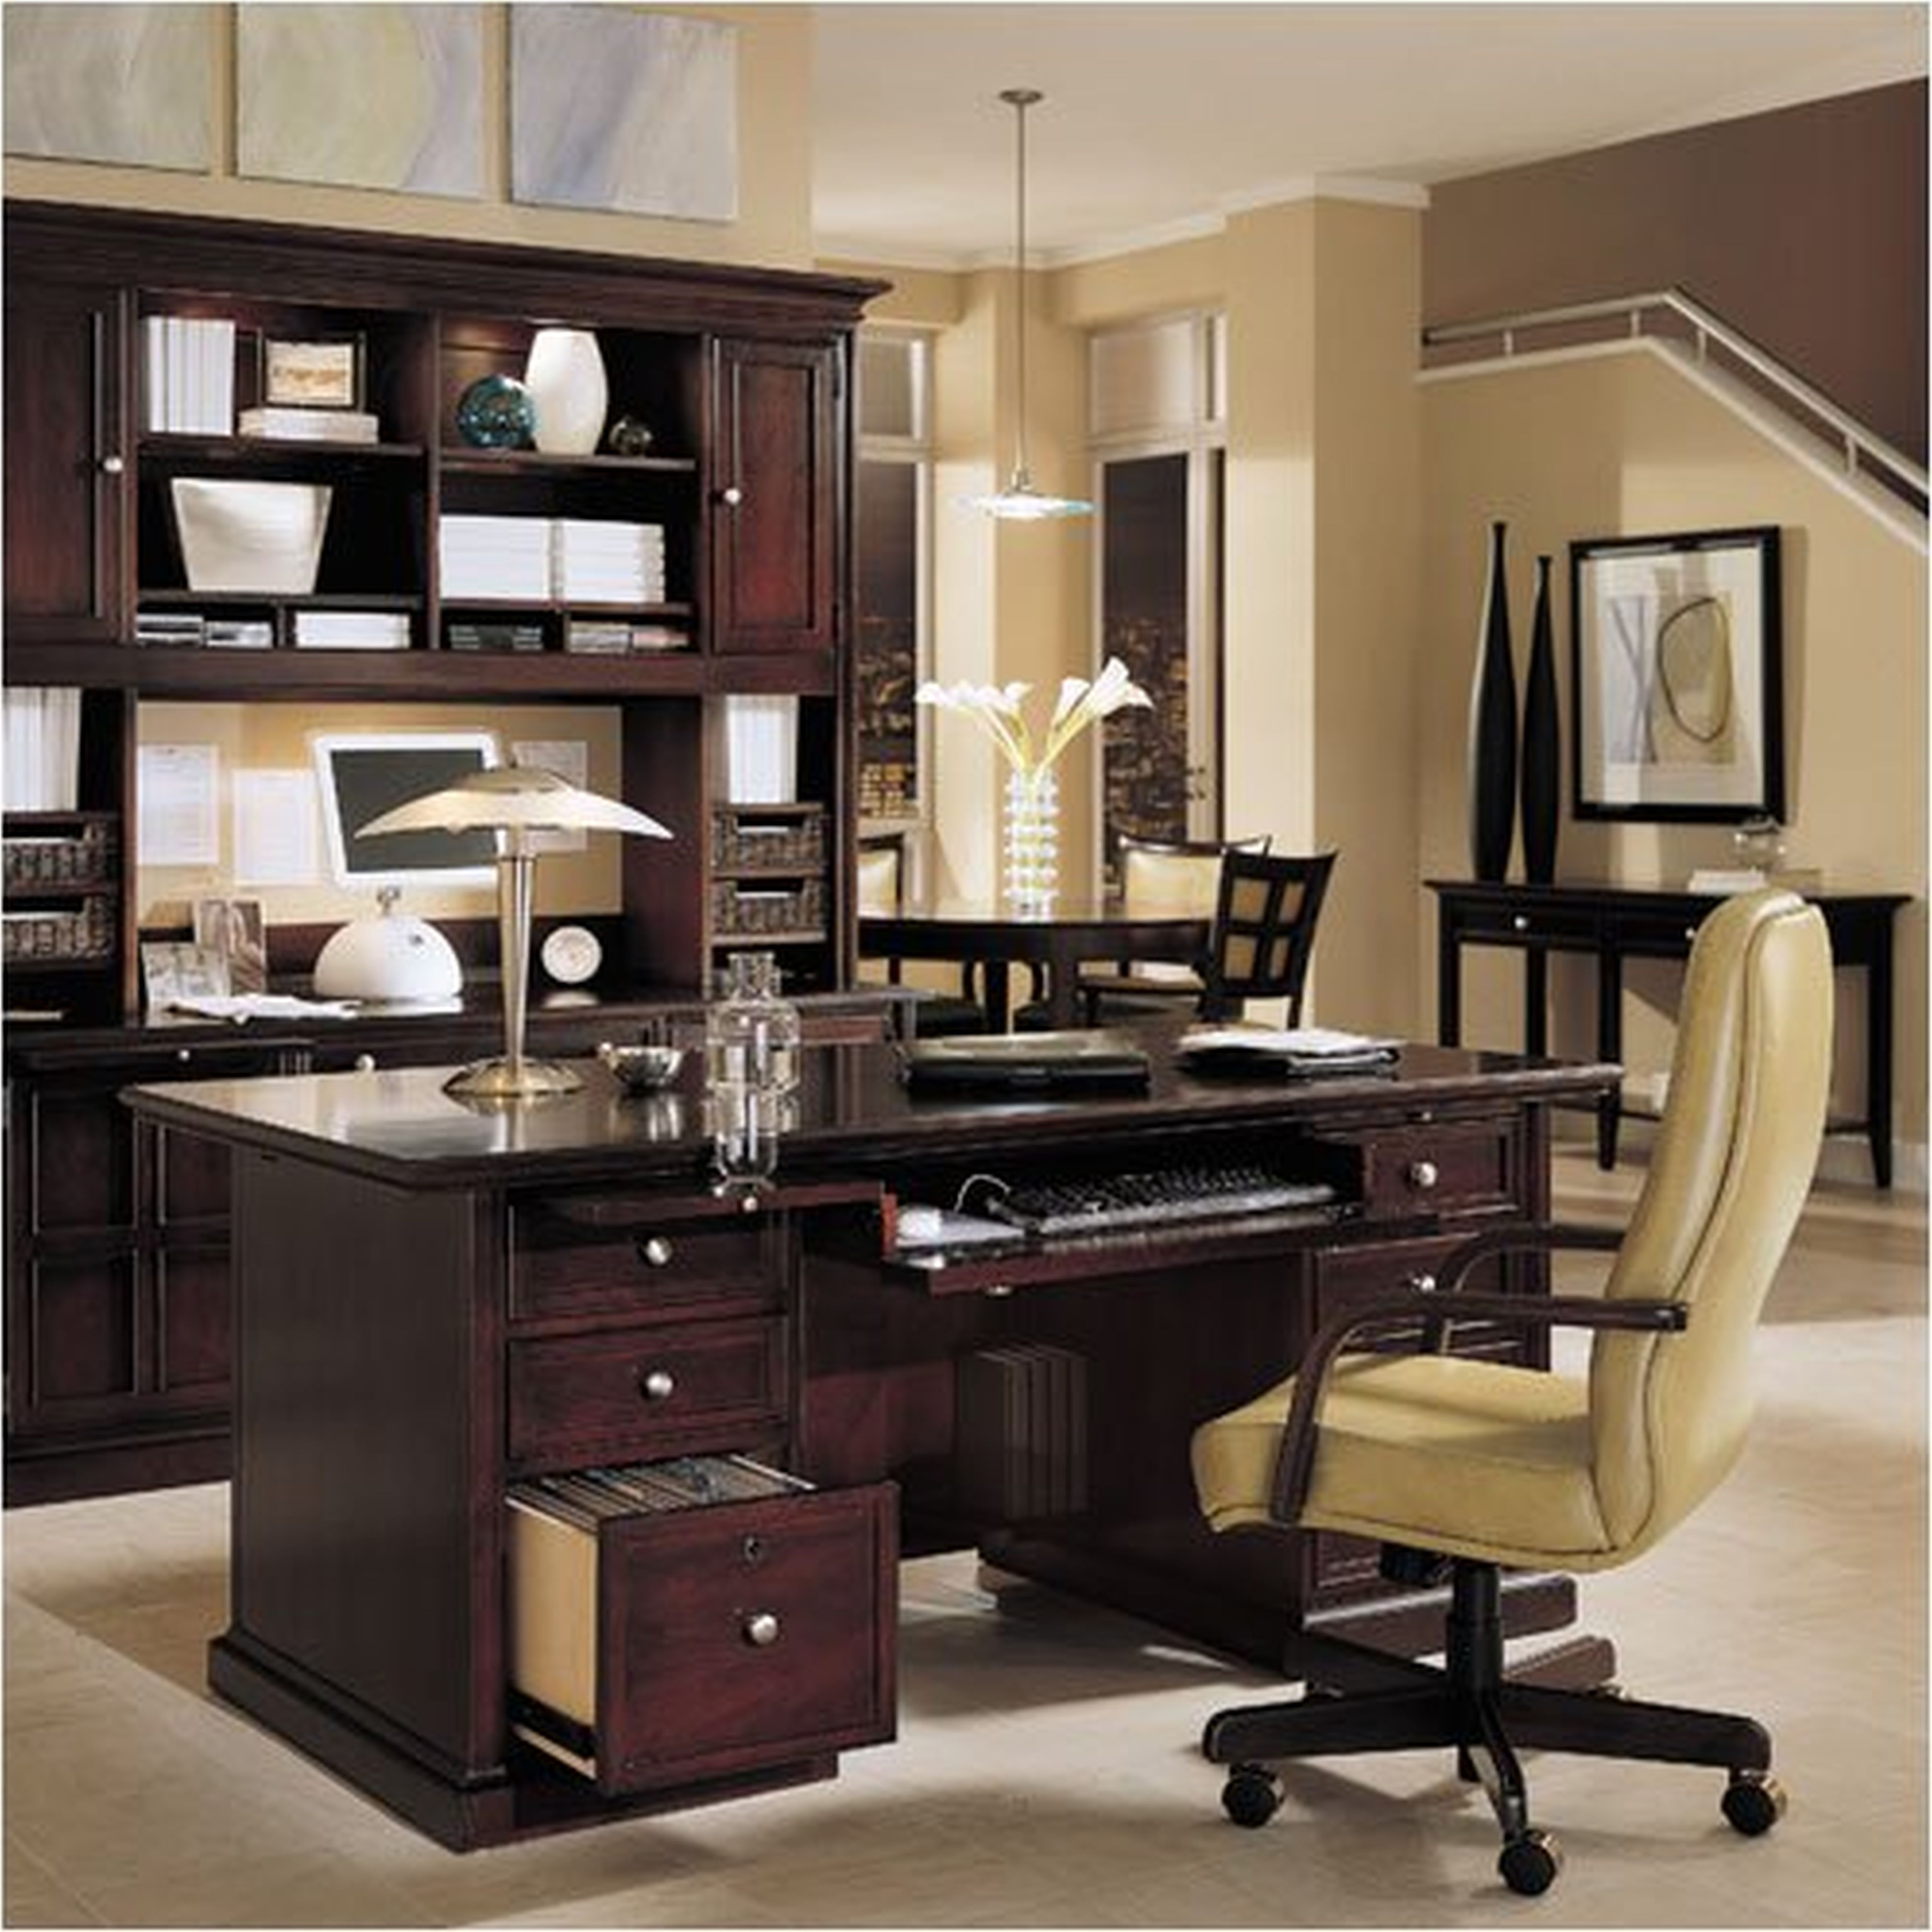 rustic home office ideas. Nice Inspiration Ideas Rustic Home Office Remarkable Design Decorating 7084 I